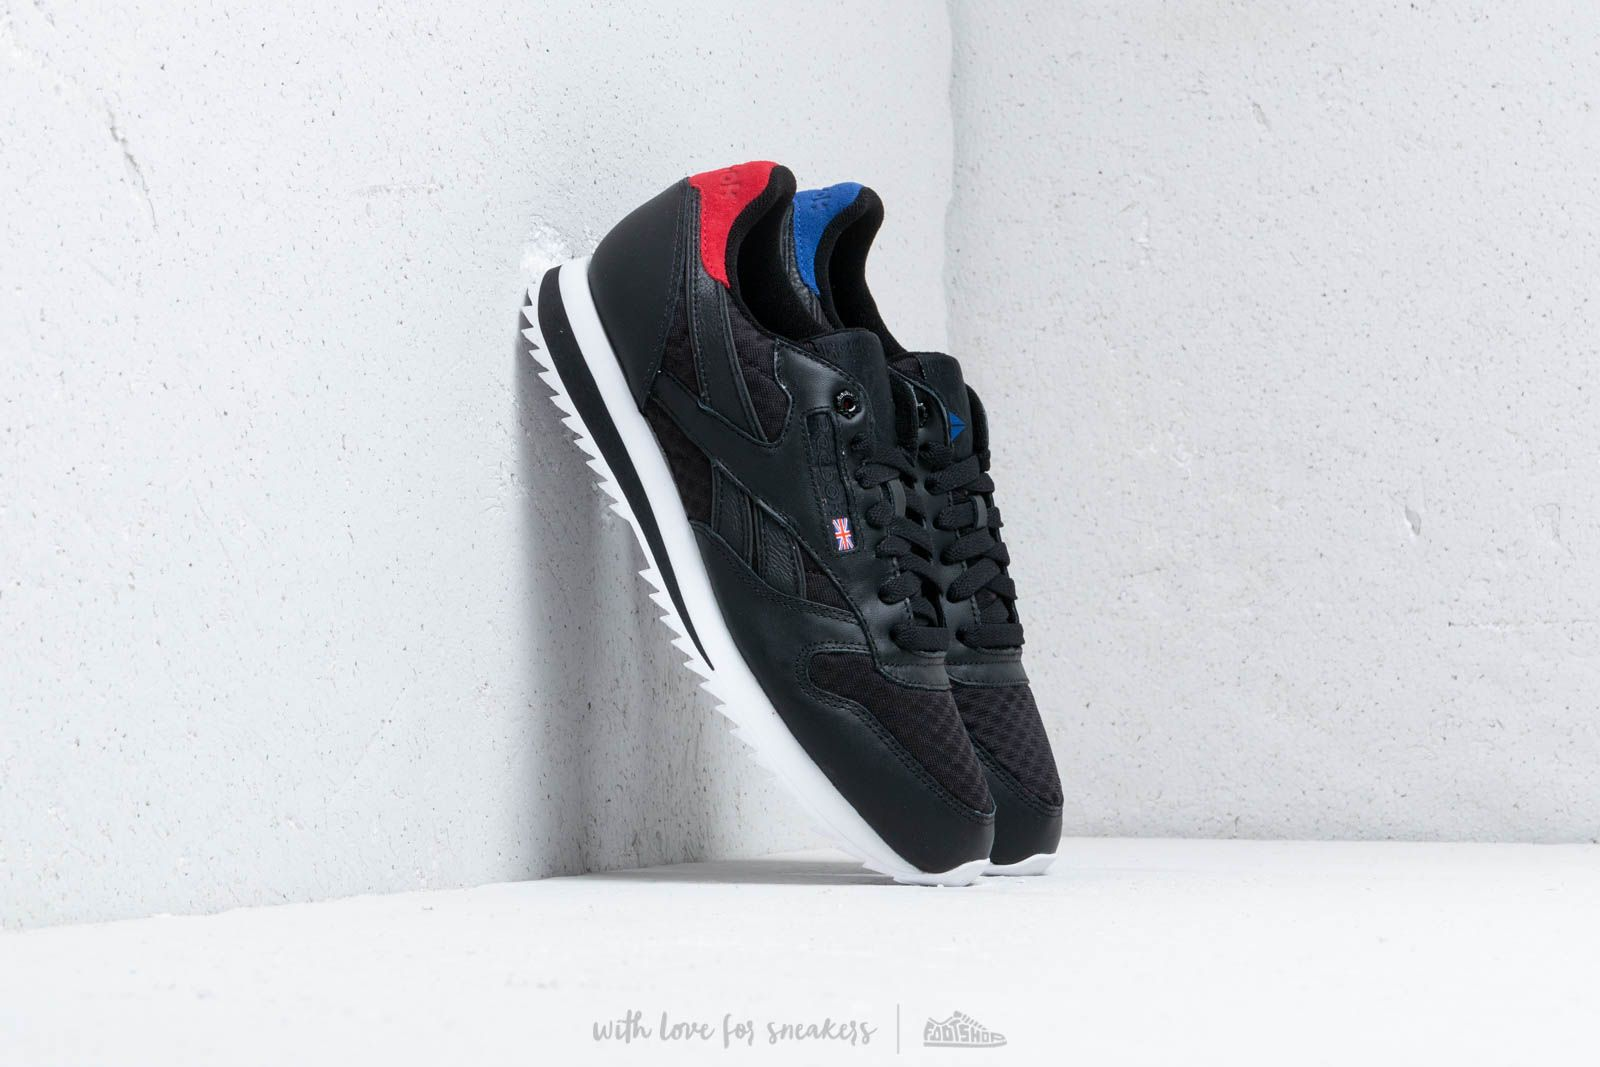 Reebok Classic Leather HC Black/ Excellent Red/ Team Dark Royal/ White